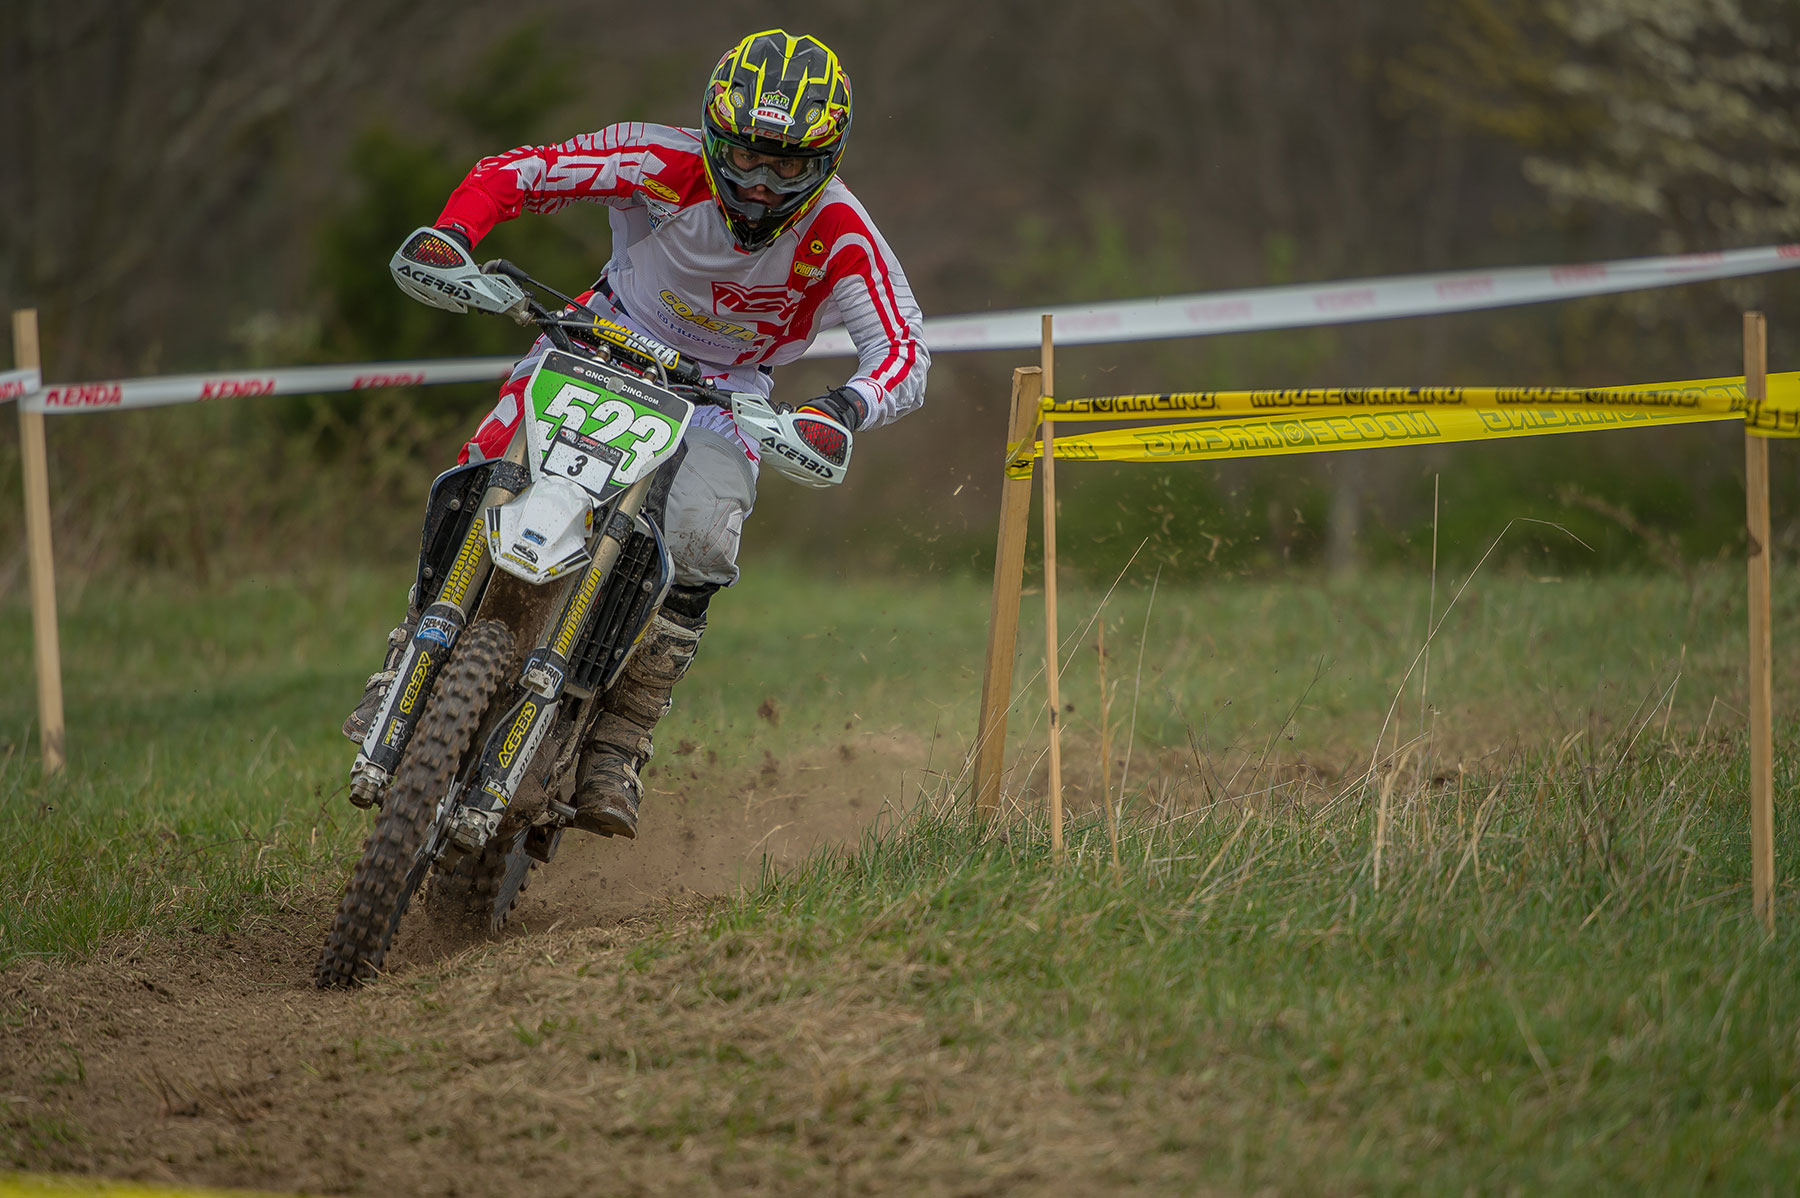 Layne Michael on the way to his first Full Gas win. Photo by Shan Moore.